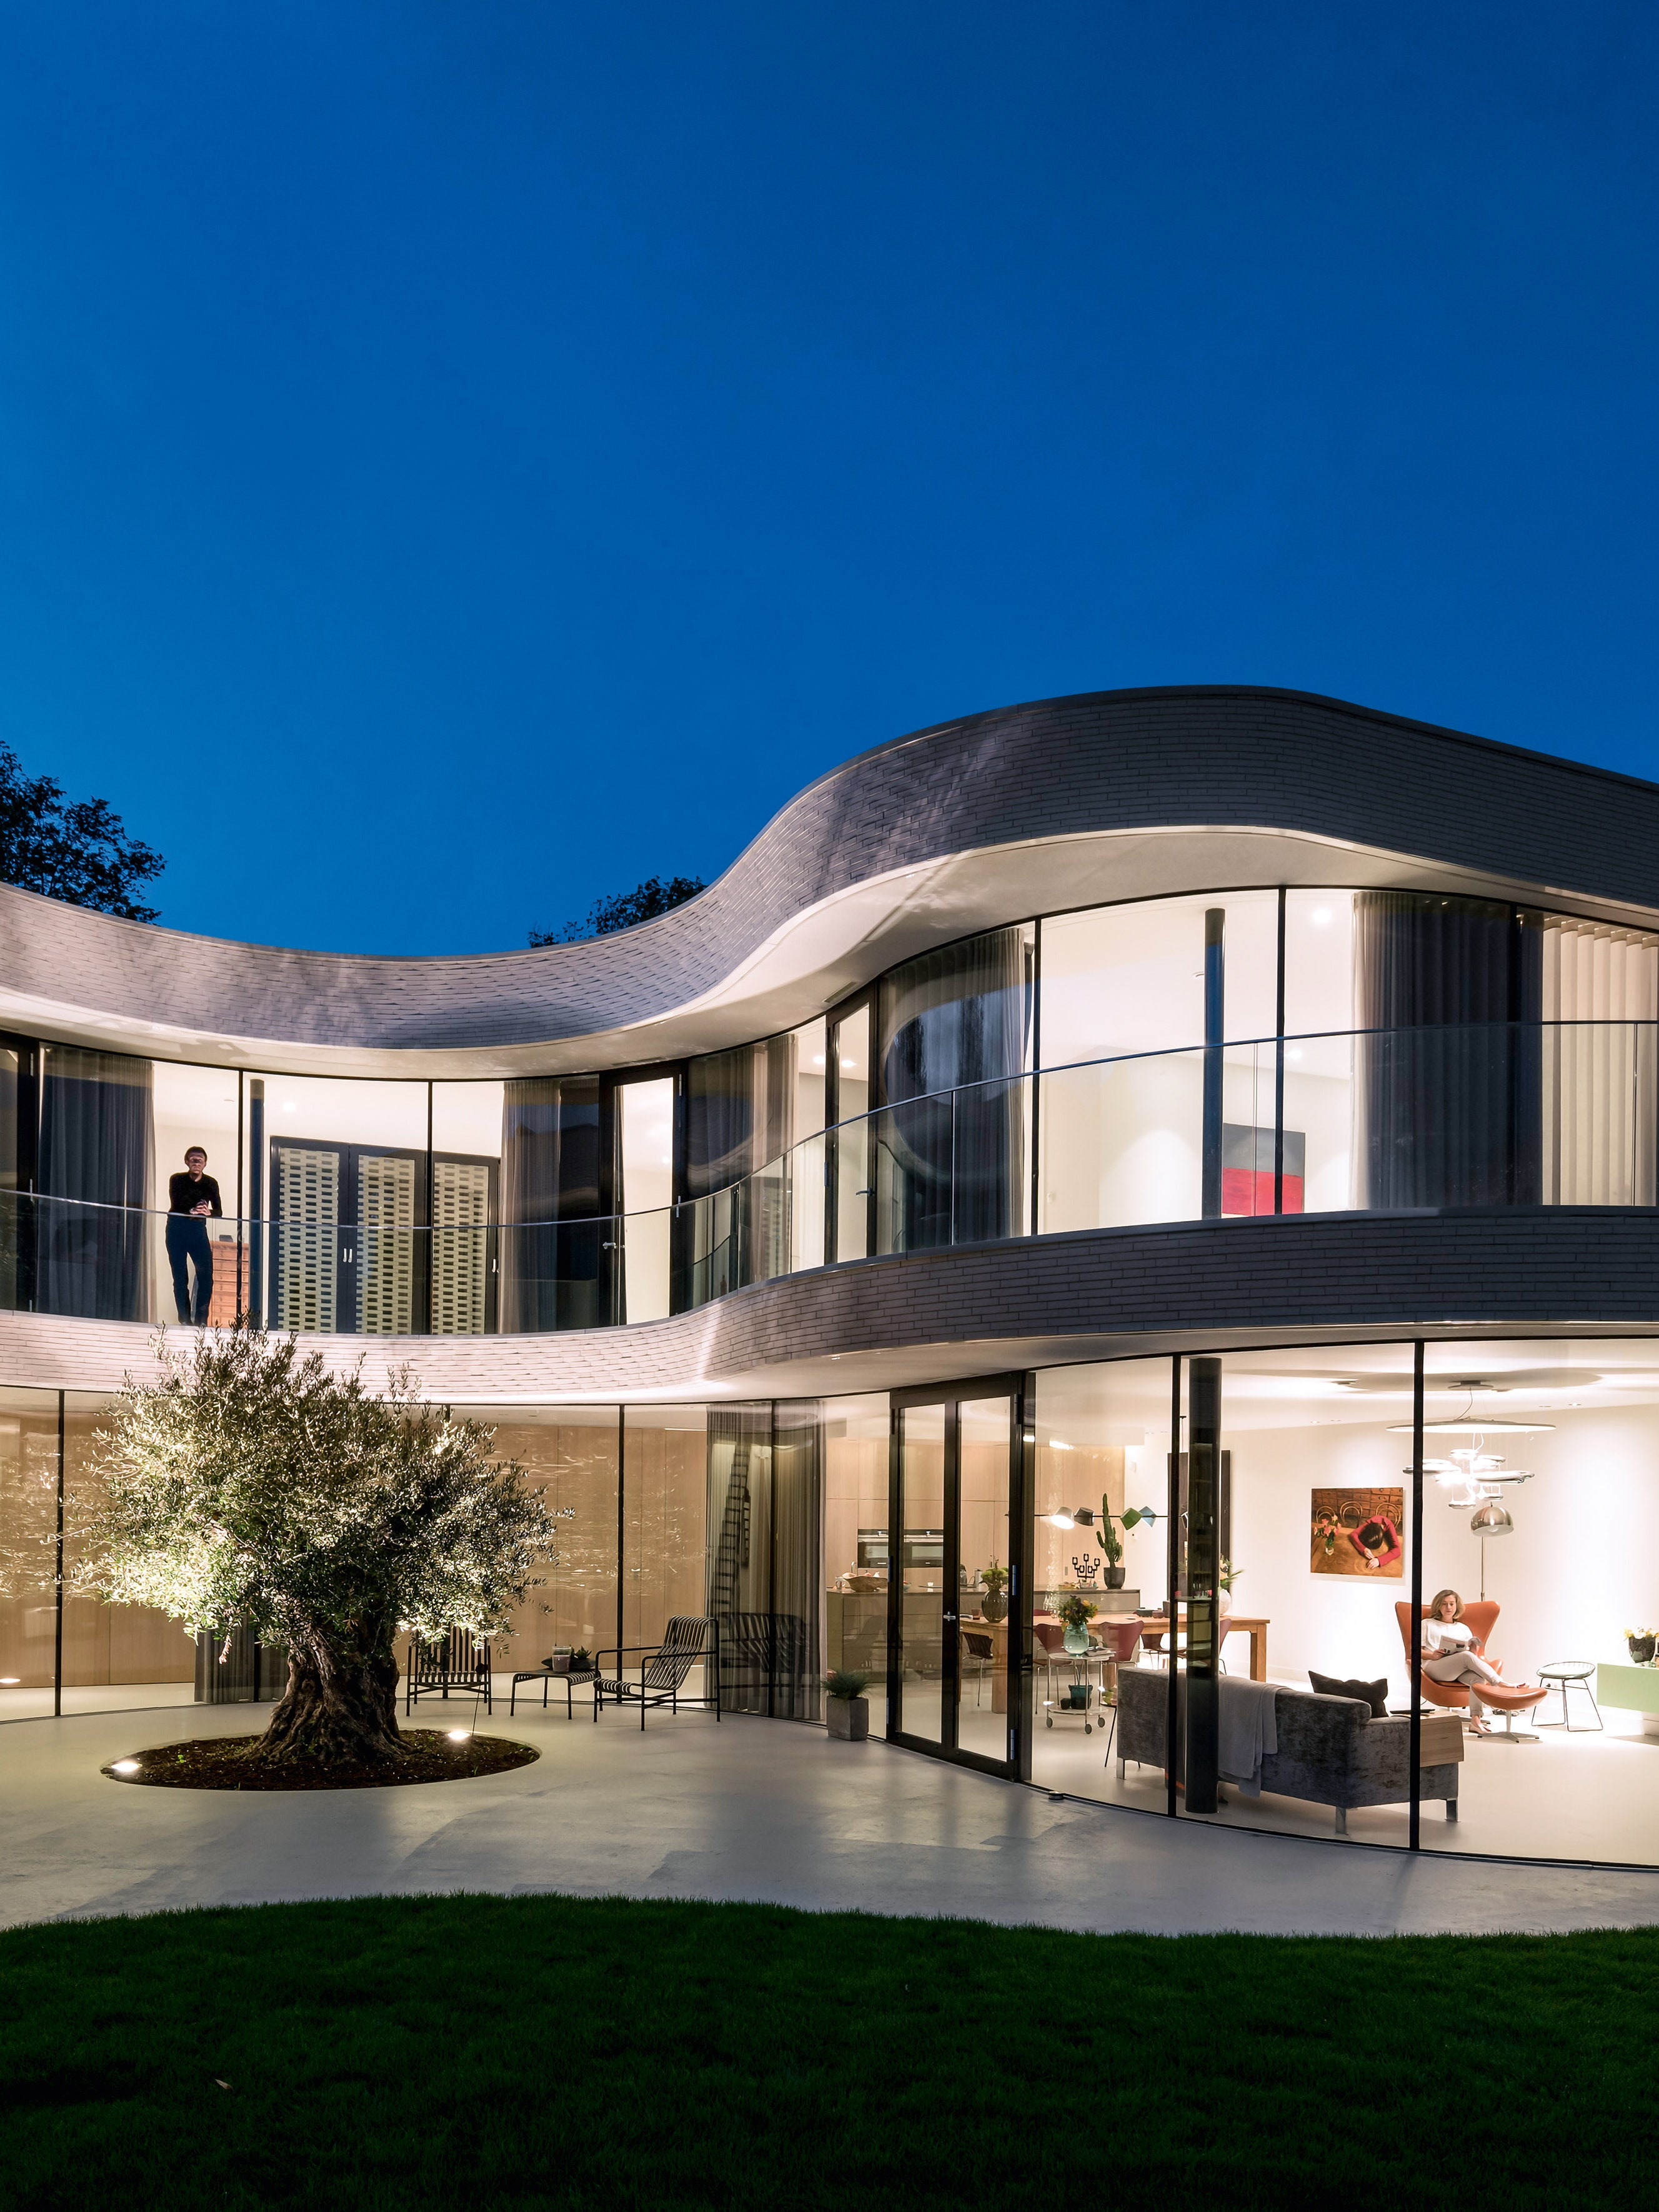 Top Ten Beautiful Houses In the World Fresh Jaw Dropping Contemporary Homes From Across the Globe